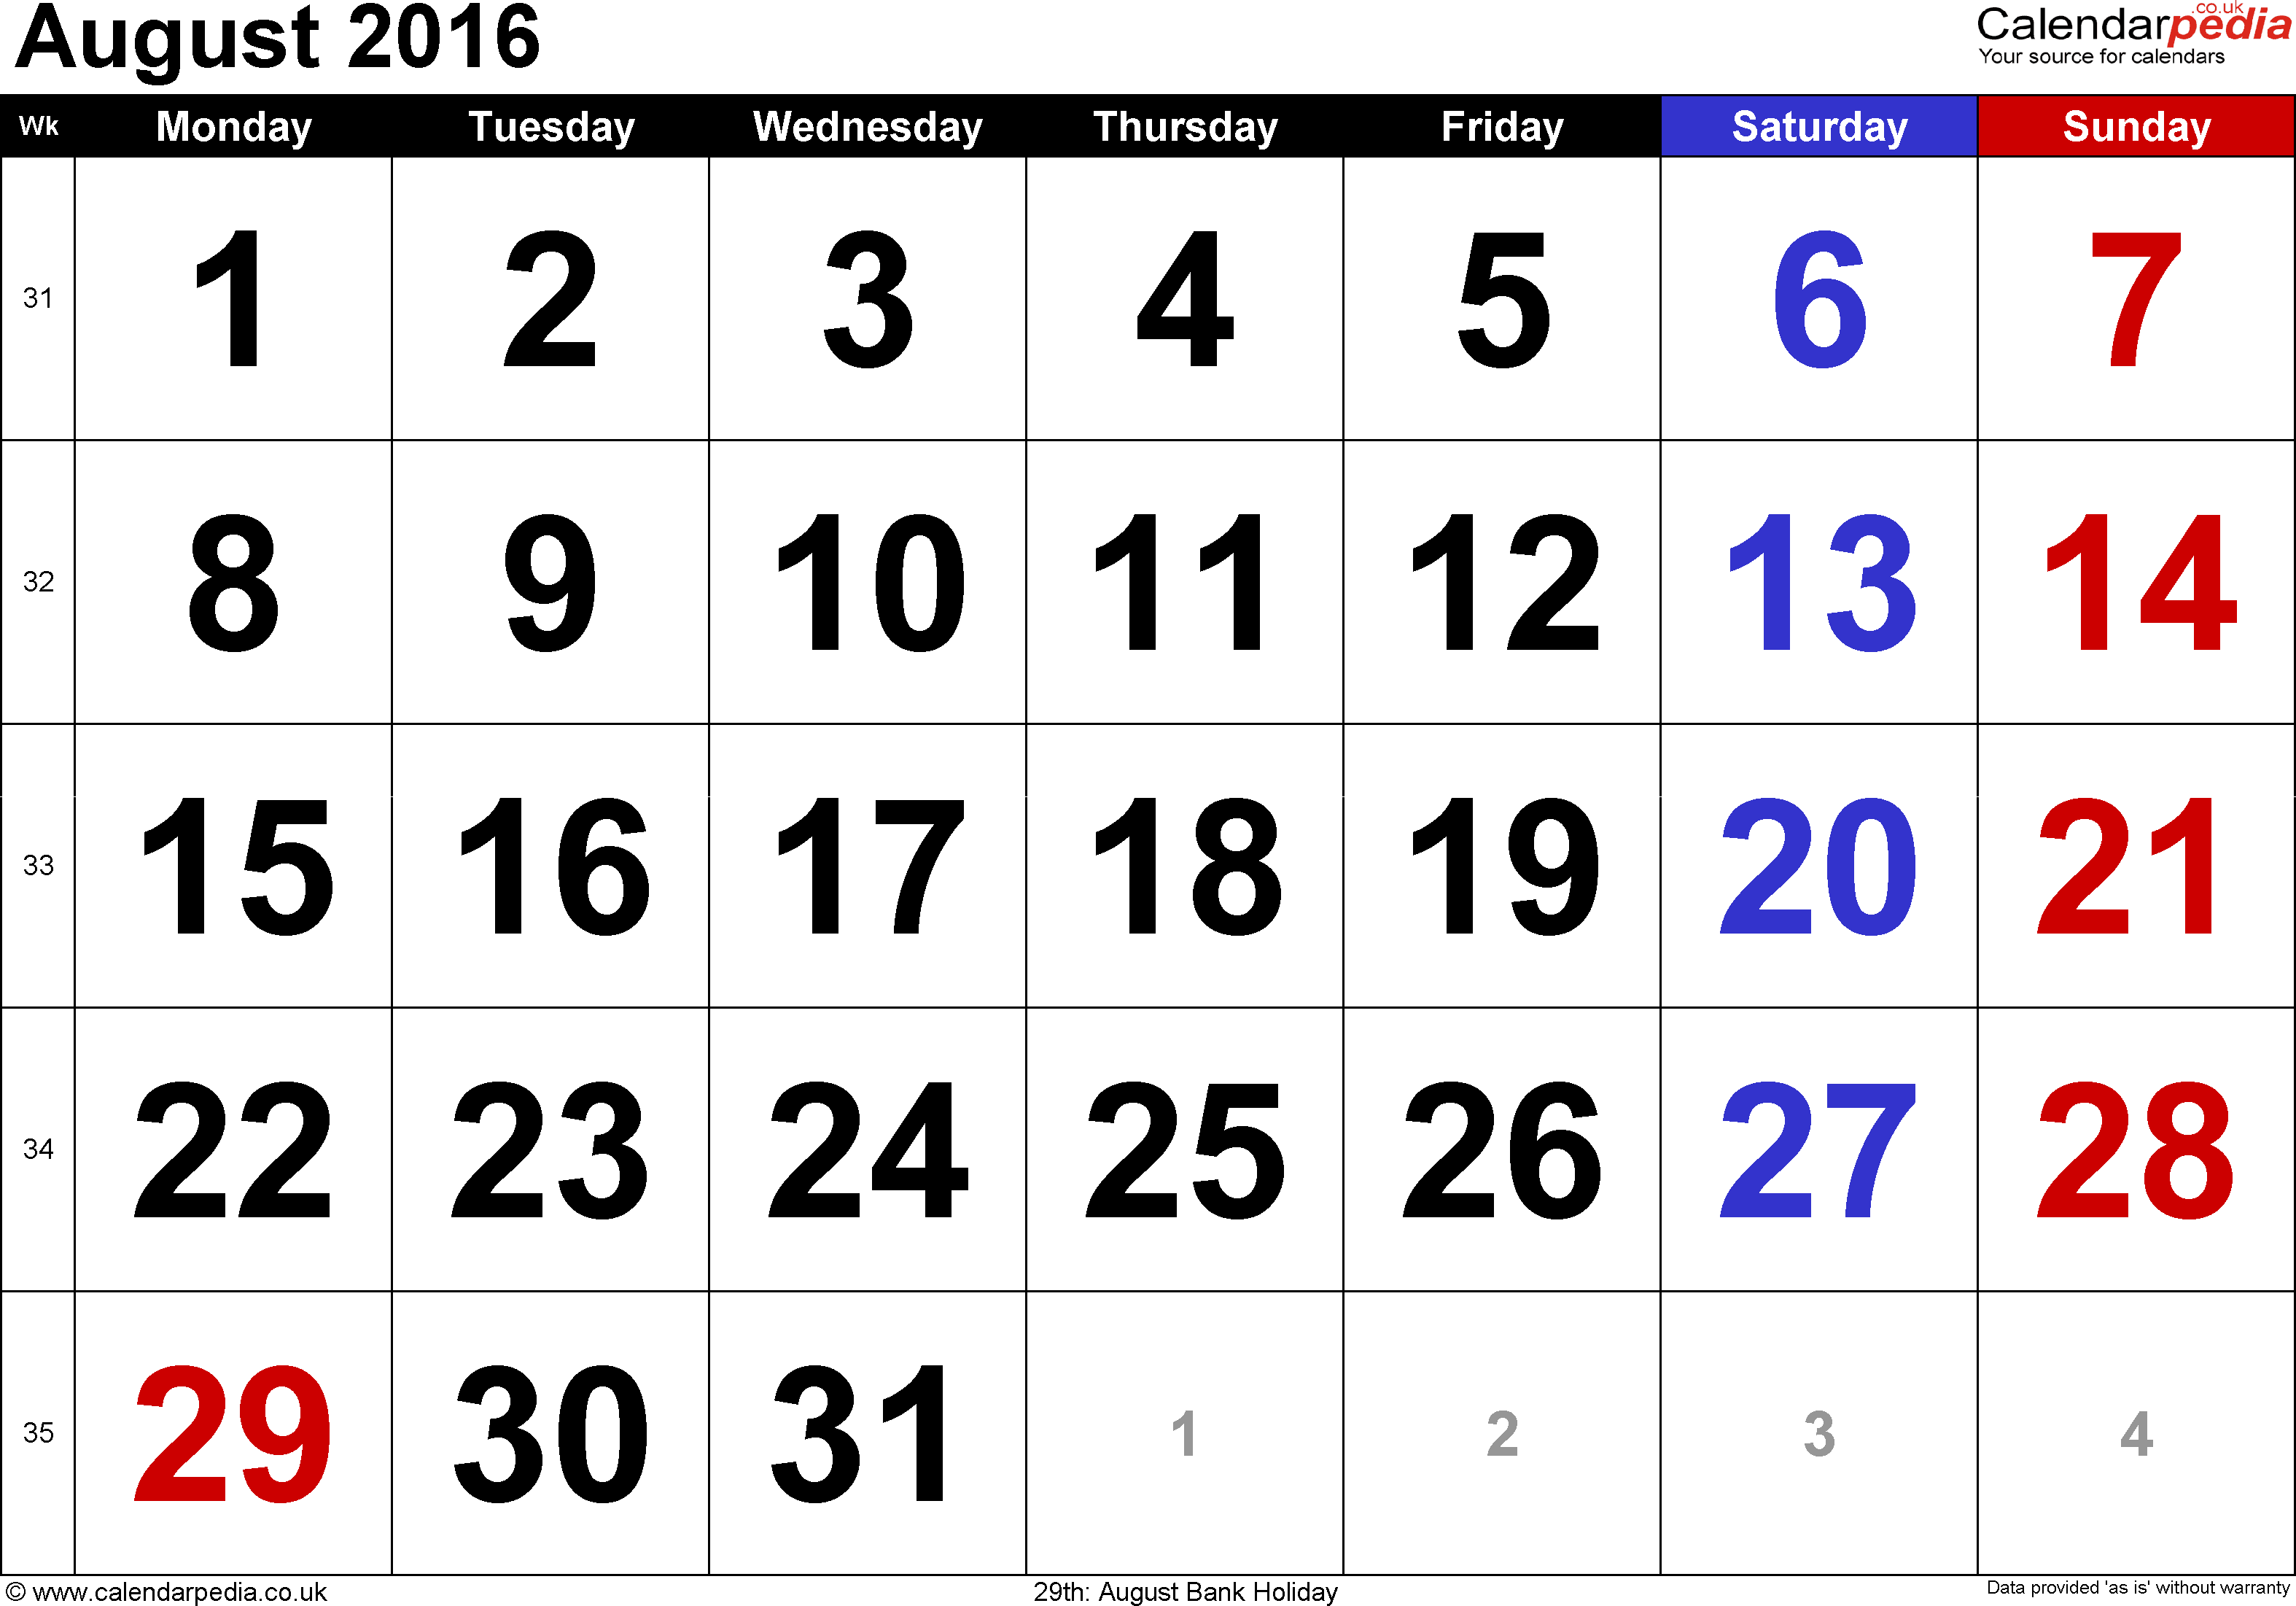 Calendar August 2016, landscape orientation, large numerals, 1 page, with UK bank holidays and week numbers